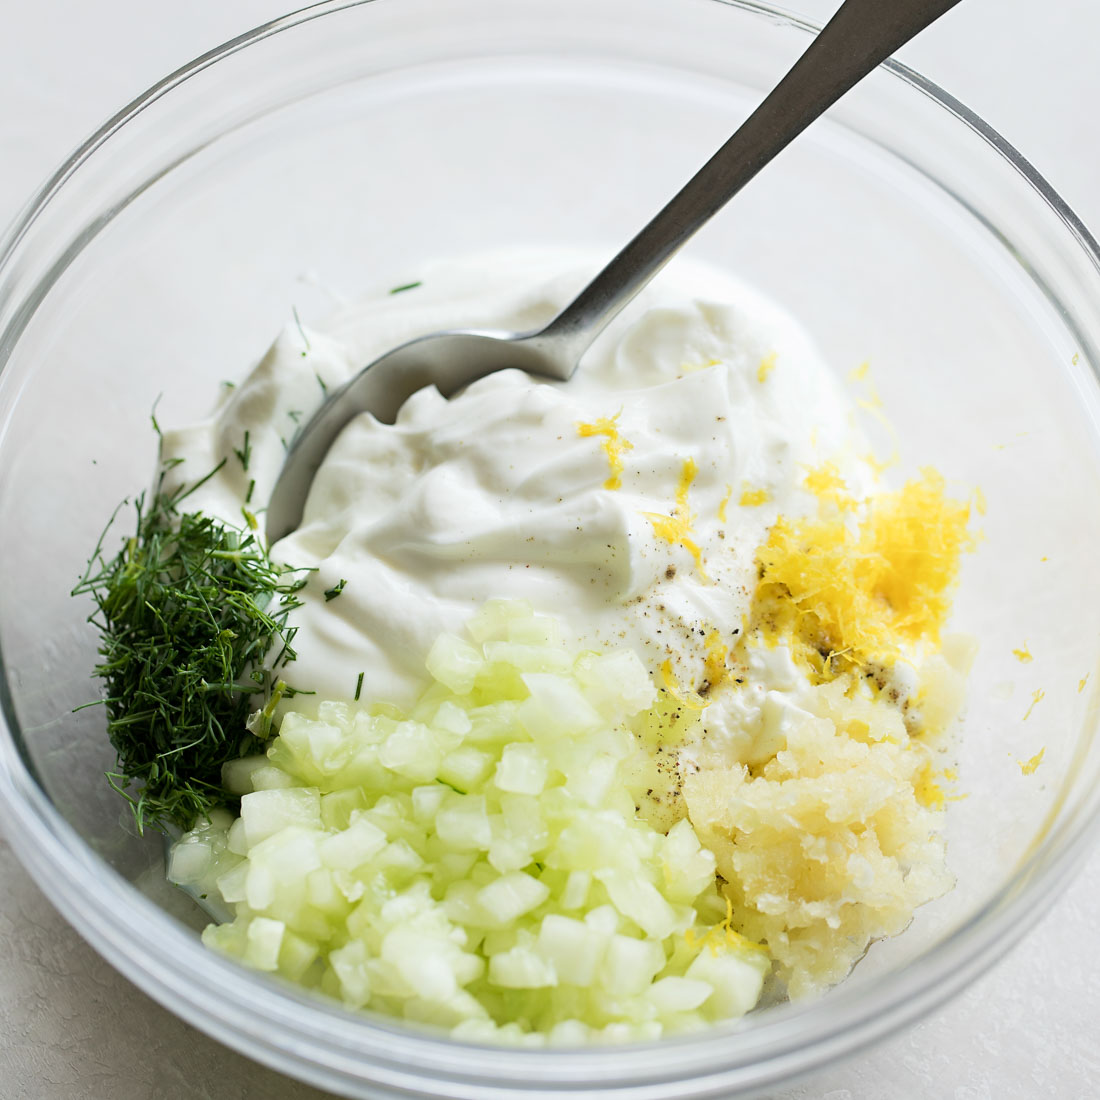 Tzatziki ingredients in glass bowl